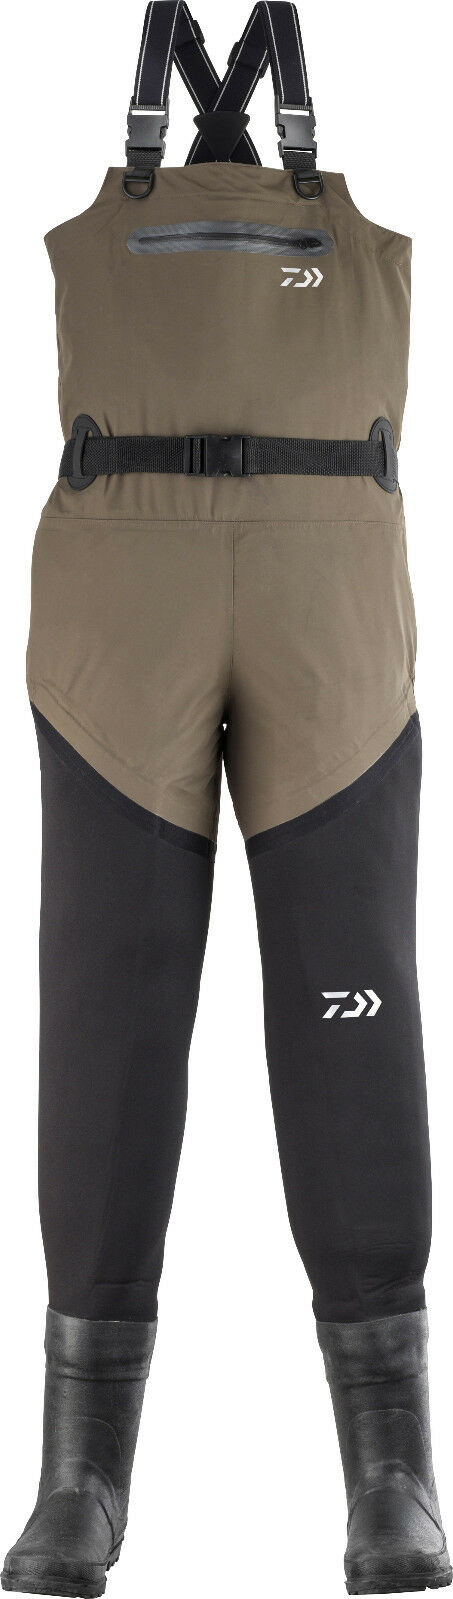 DAIWA D-vec neoprene impermeabili in nylon traspirante Watt Pantaloni 15000mm colonna d'acqua Top